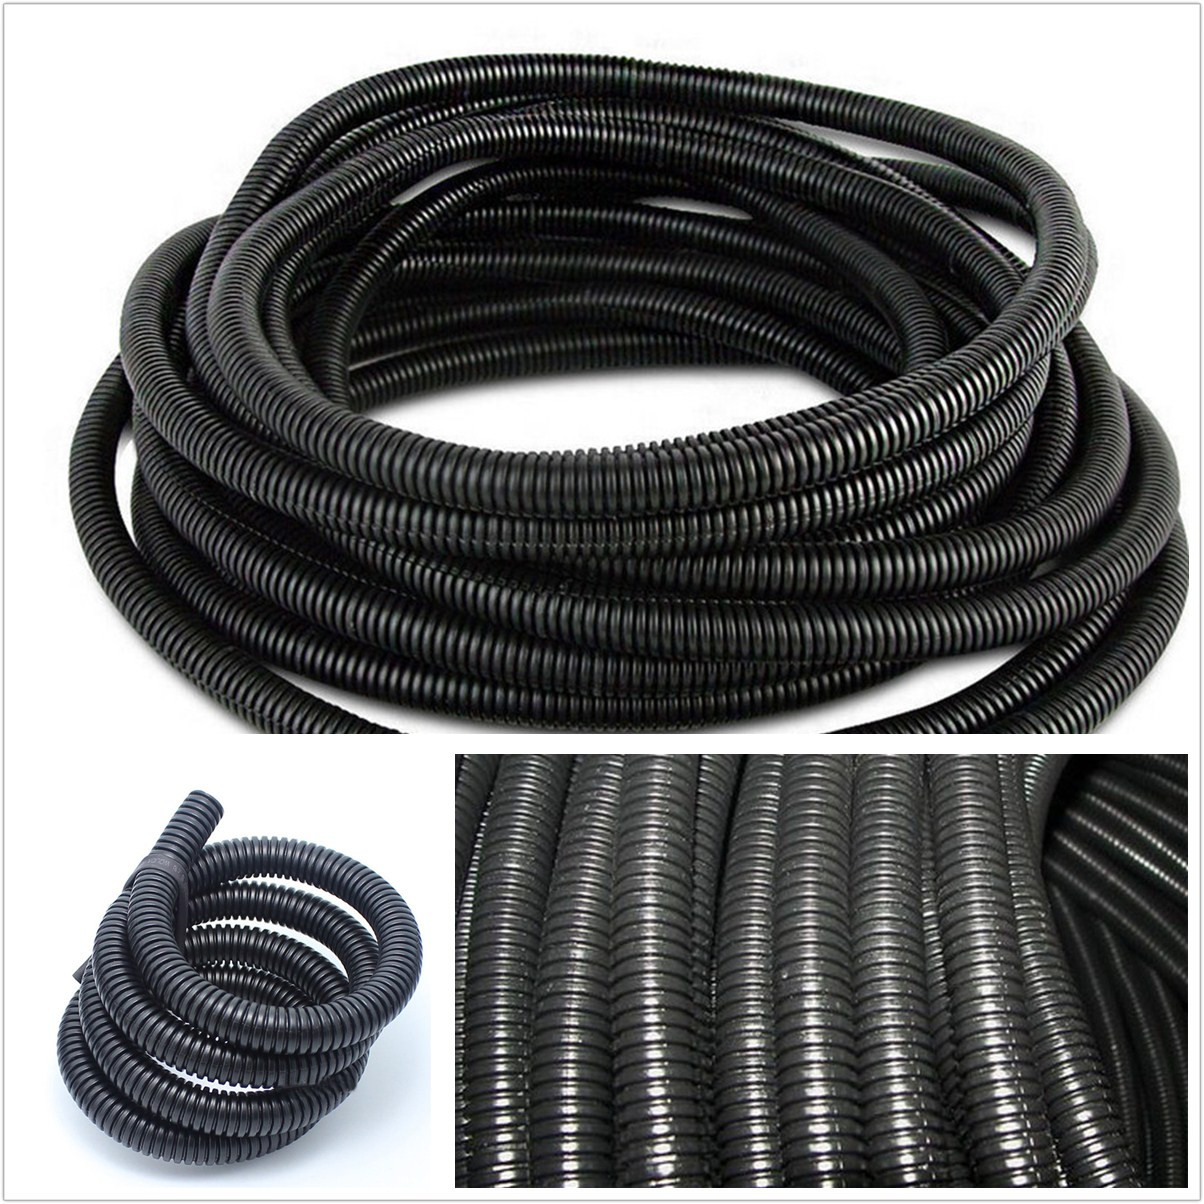 hight resolution of details about 1 25mm black diy 10m car automotive split wire loom conduit polyethylene tubing